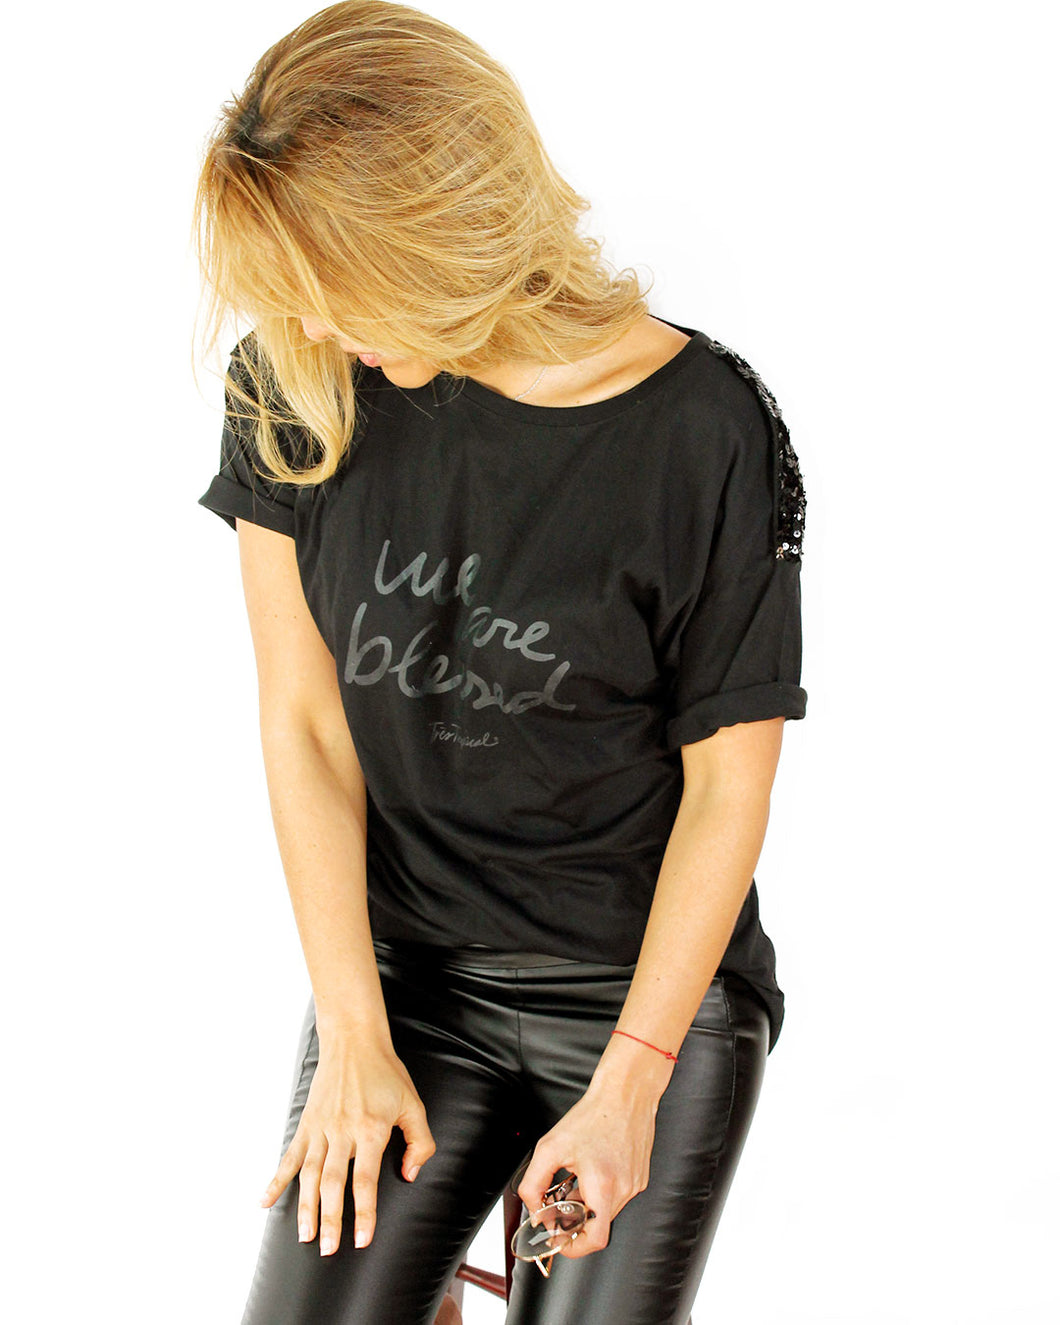 One of a Kind - WE ARE BLESSED T-Shirt